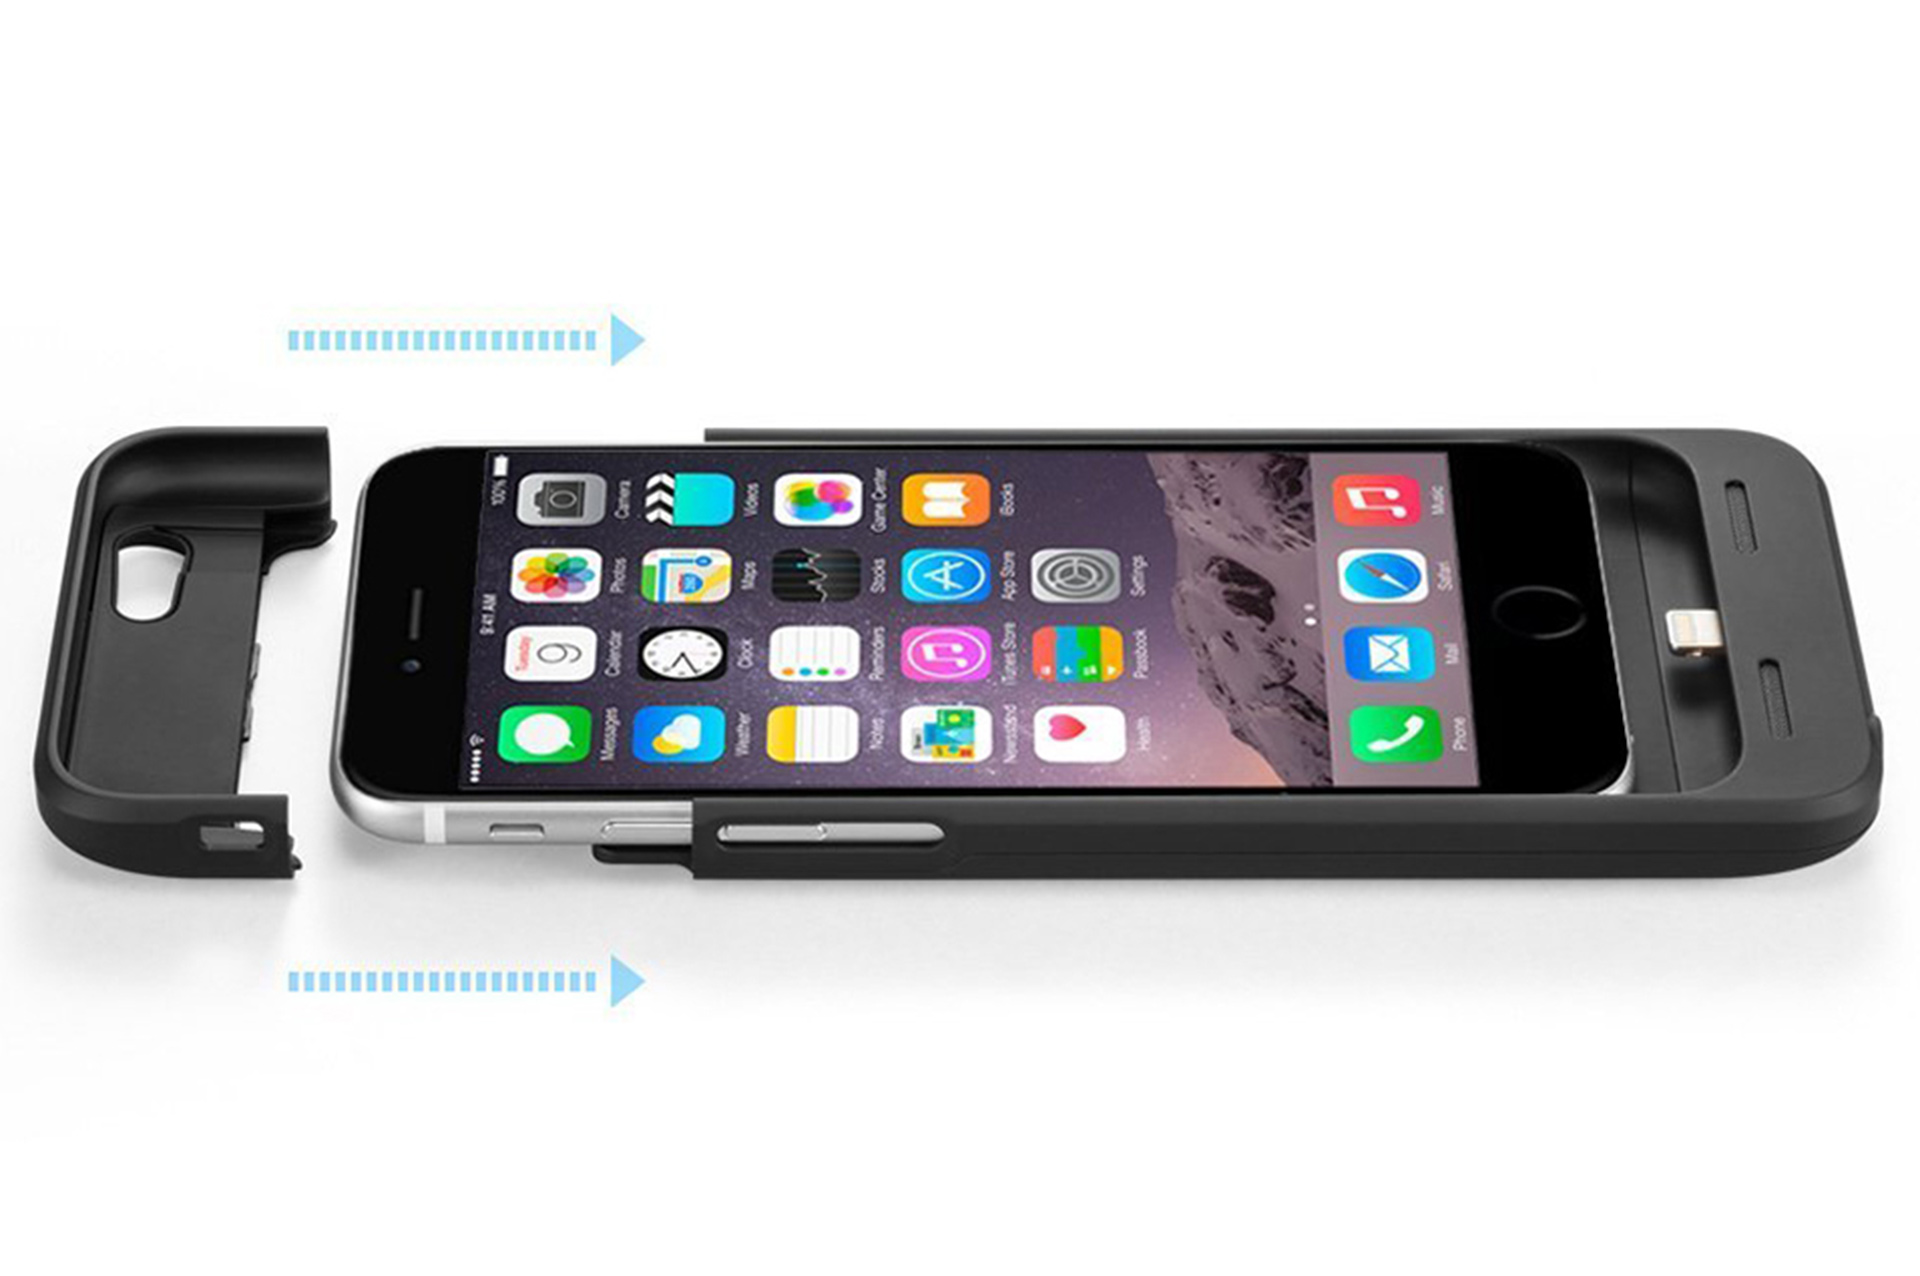 6973e1a355dece Our Pick. Anker's Ultra Slim Extended Battery Case is the iPhone 6 ...